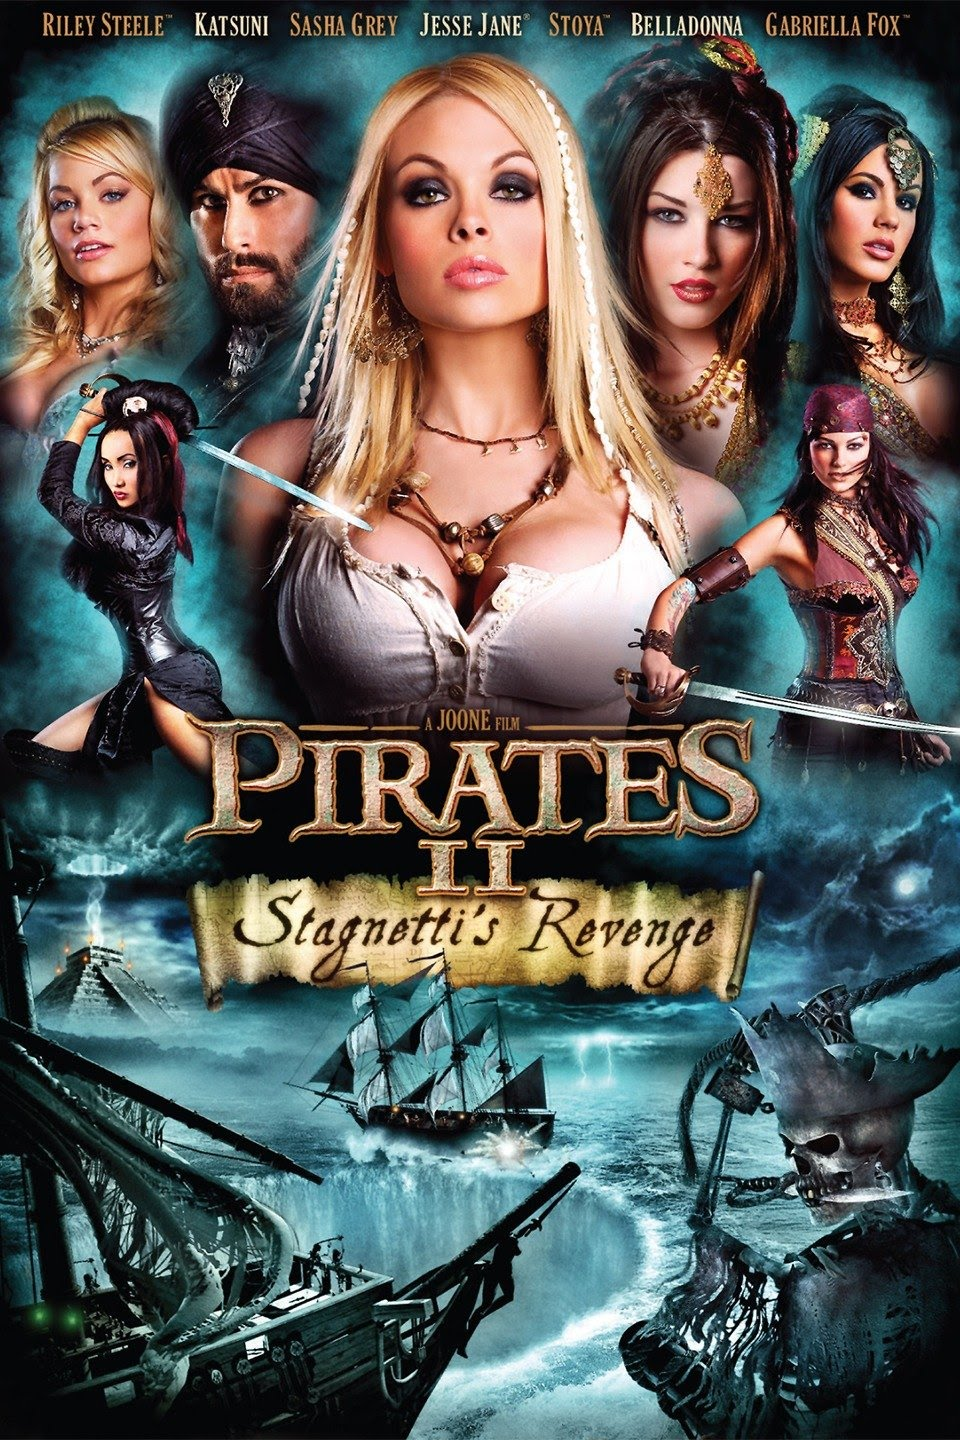 Pirates II: Stagnetti's Revenge 2008 English 720p | 480p WEB-DL x264